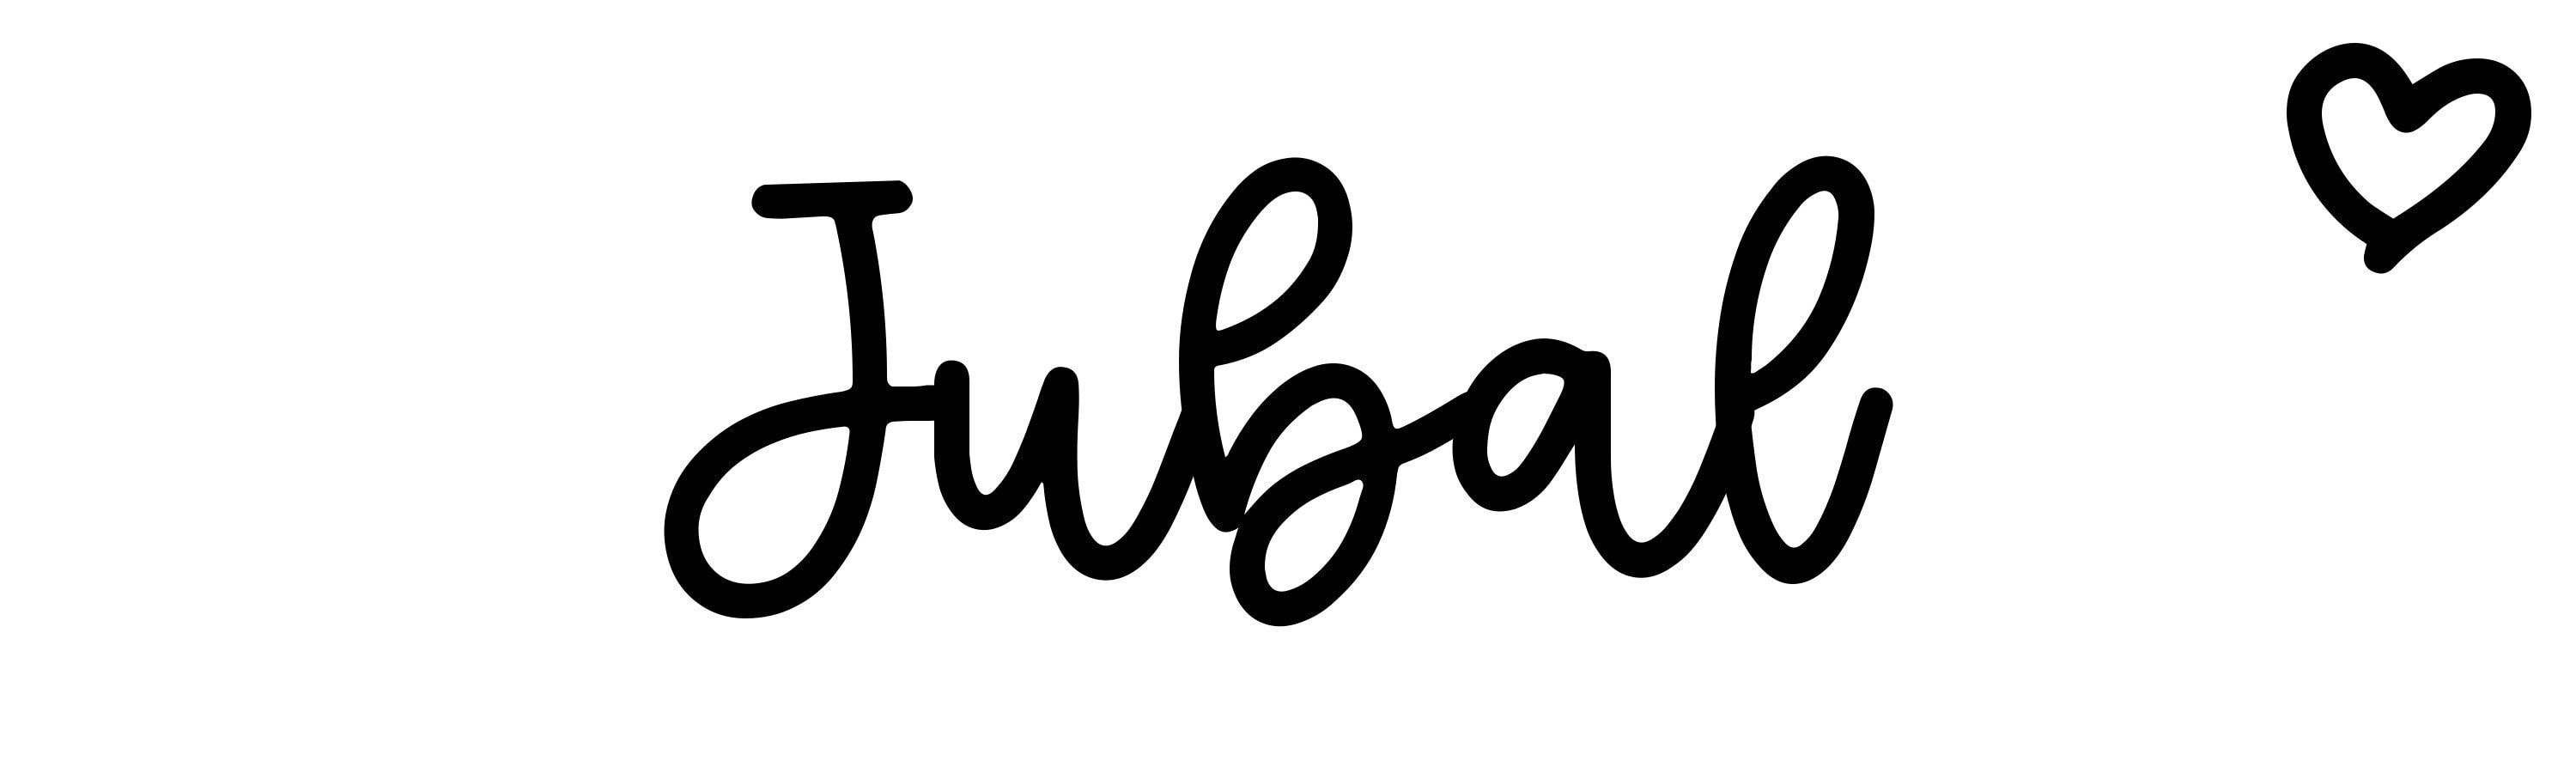 About the baby name Jubal, at Click Baby Names.com